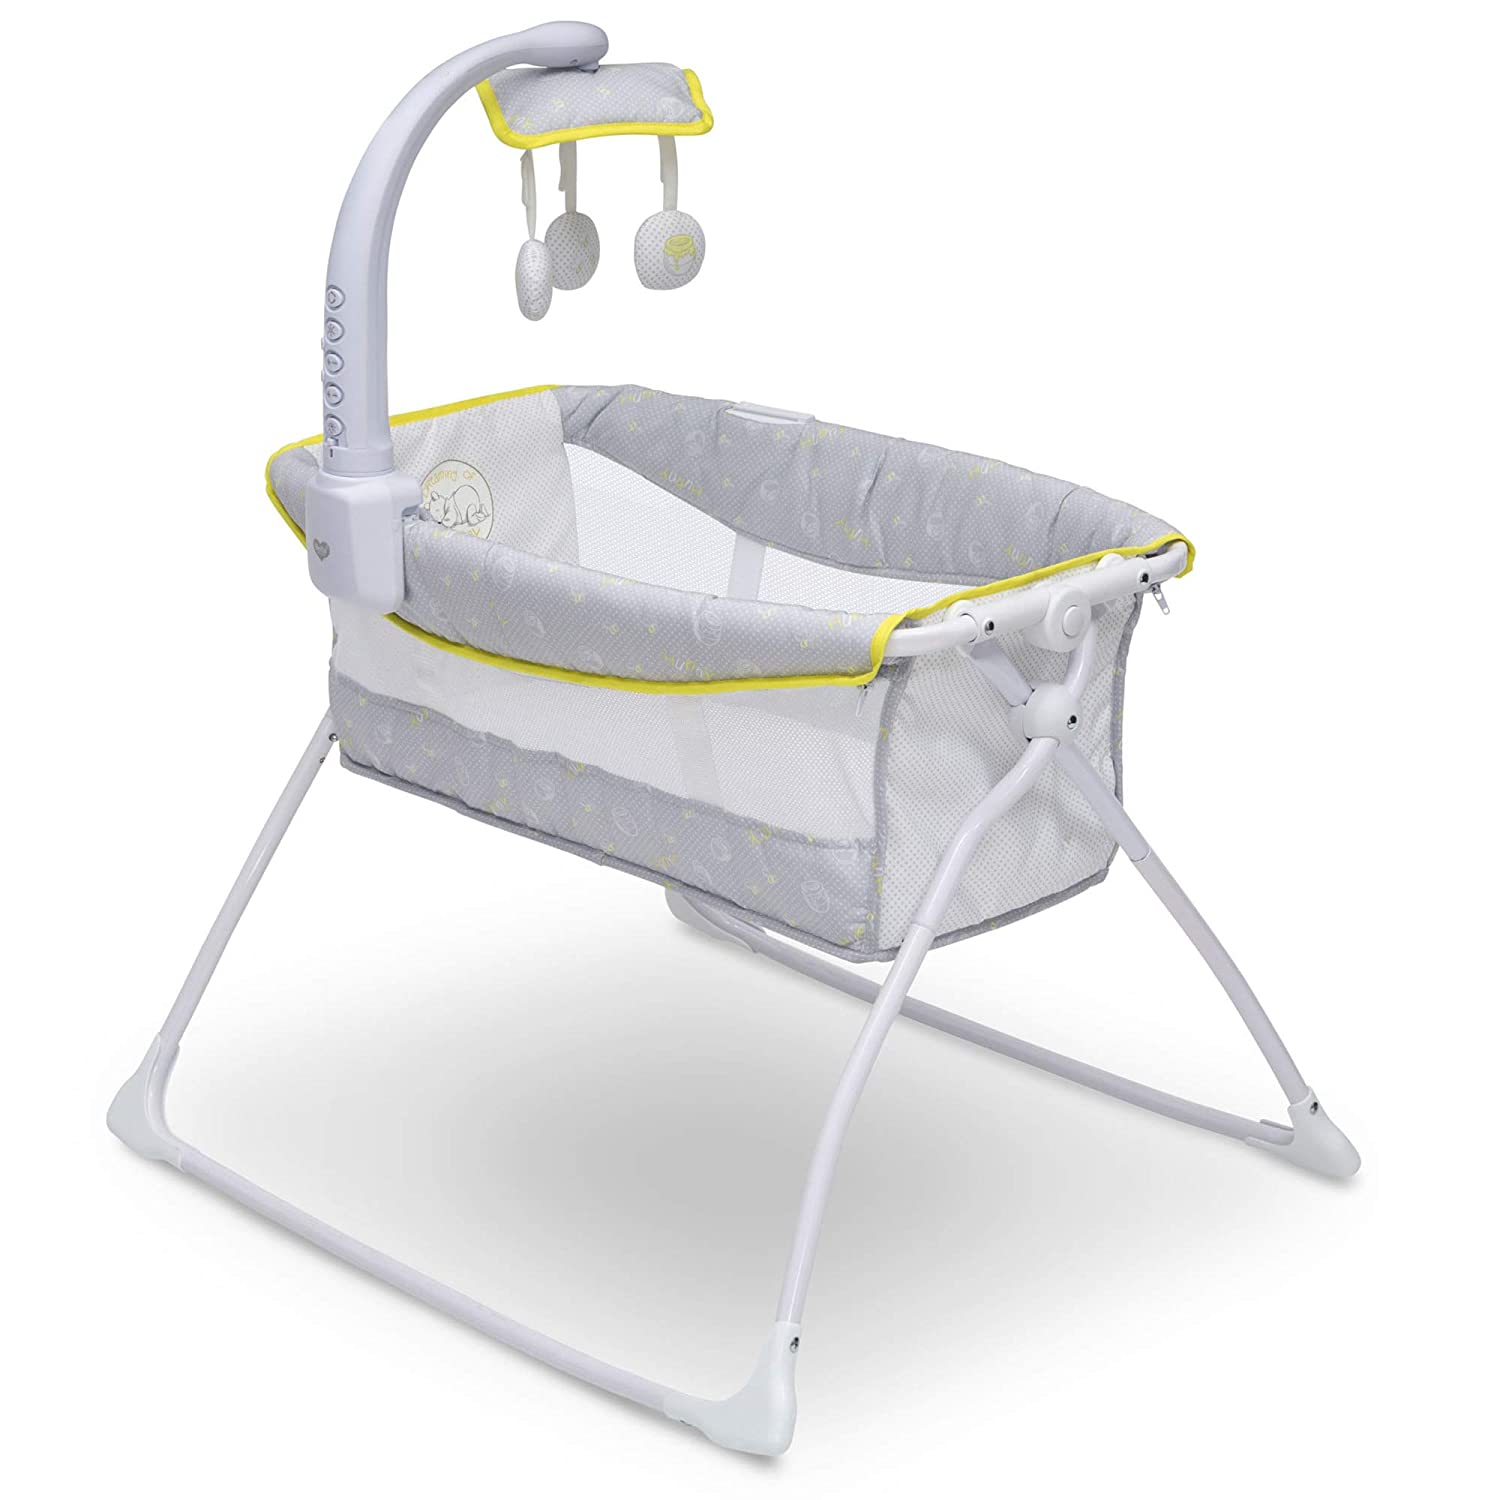 Delta Children Deluxe Activity Sleeper Bedside Bassinet - Folding Portable Crib for Newborns, Disney Winnie The Pooh